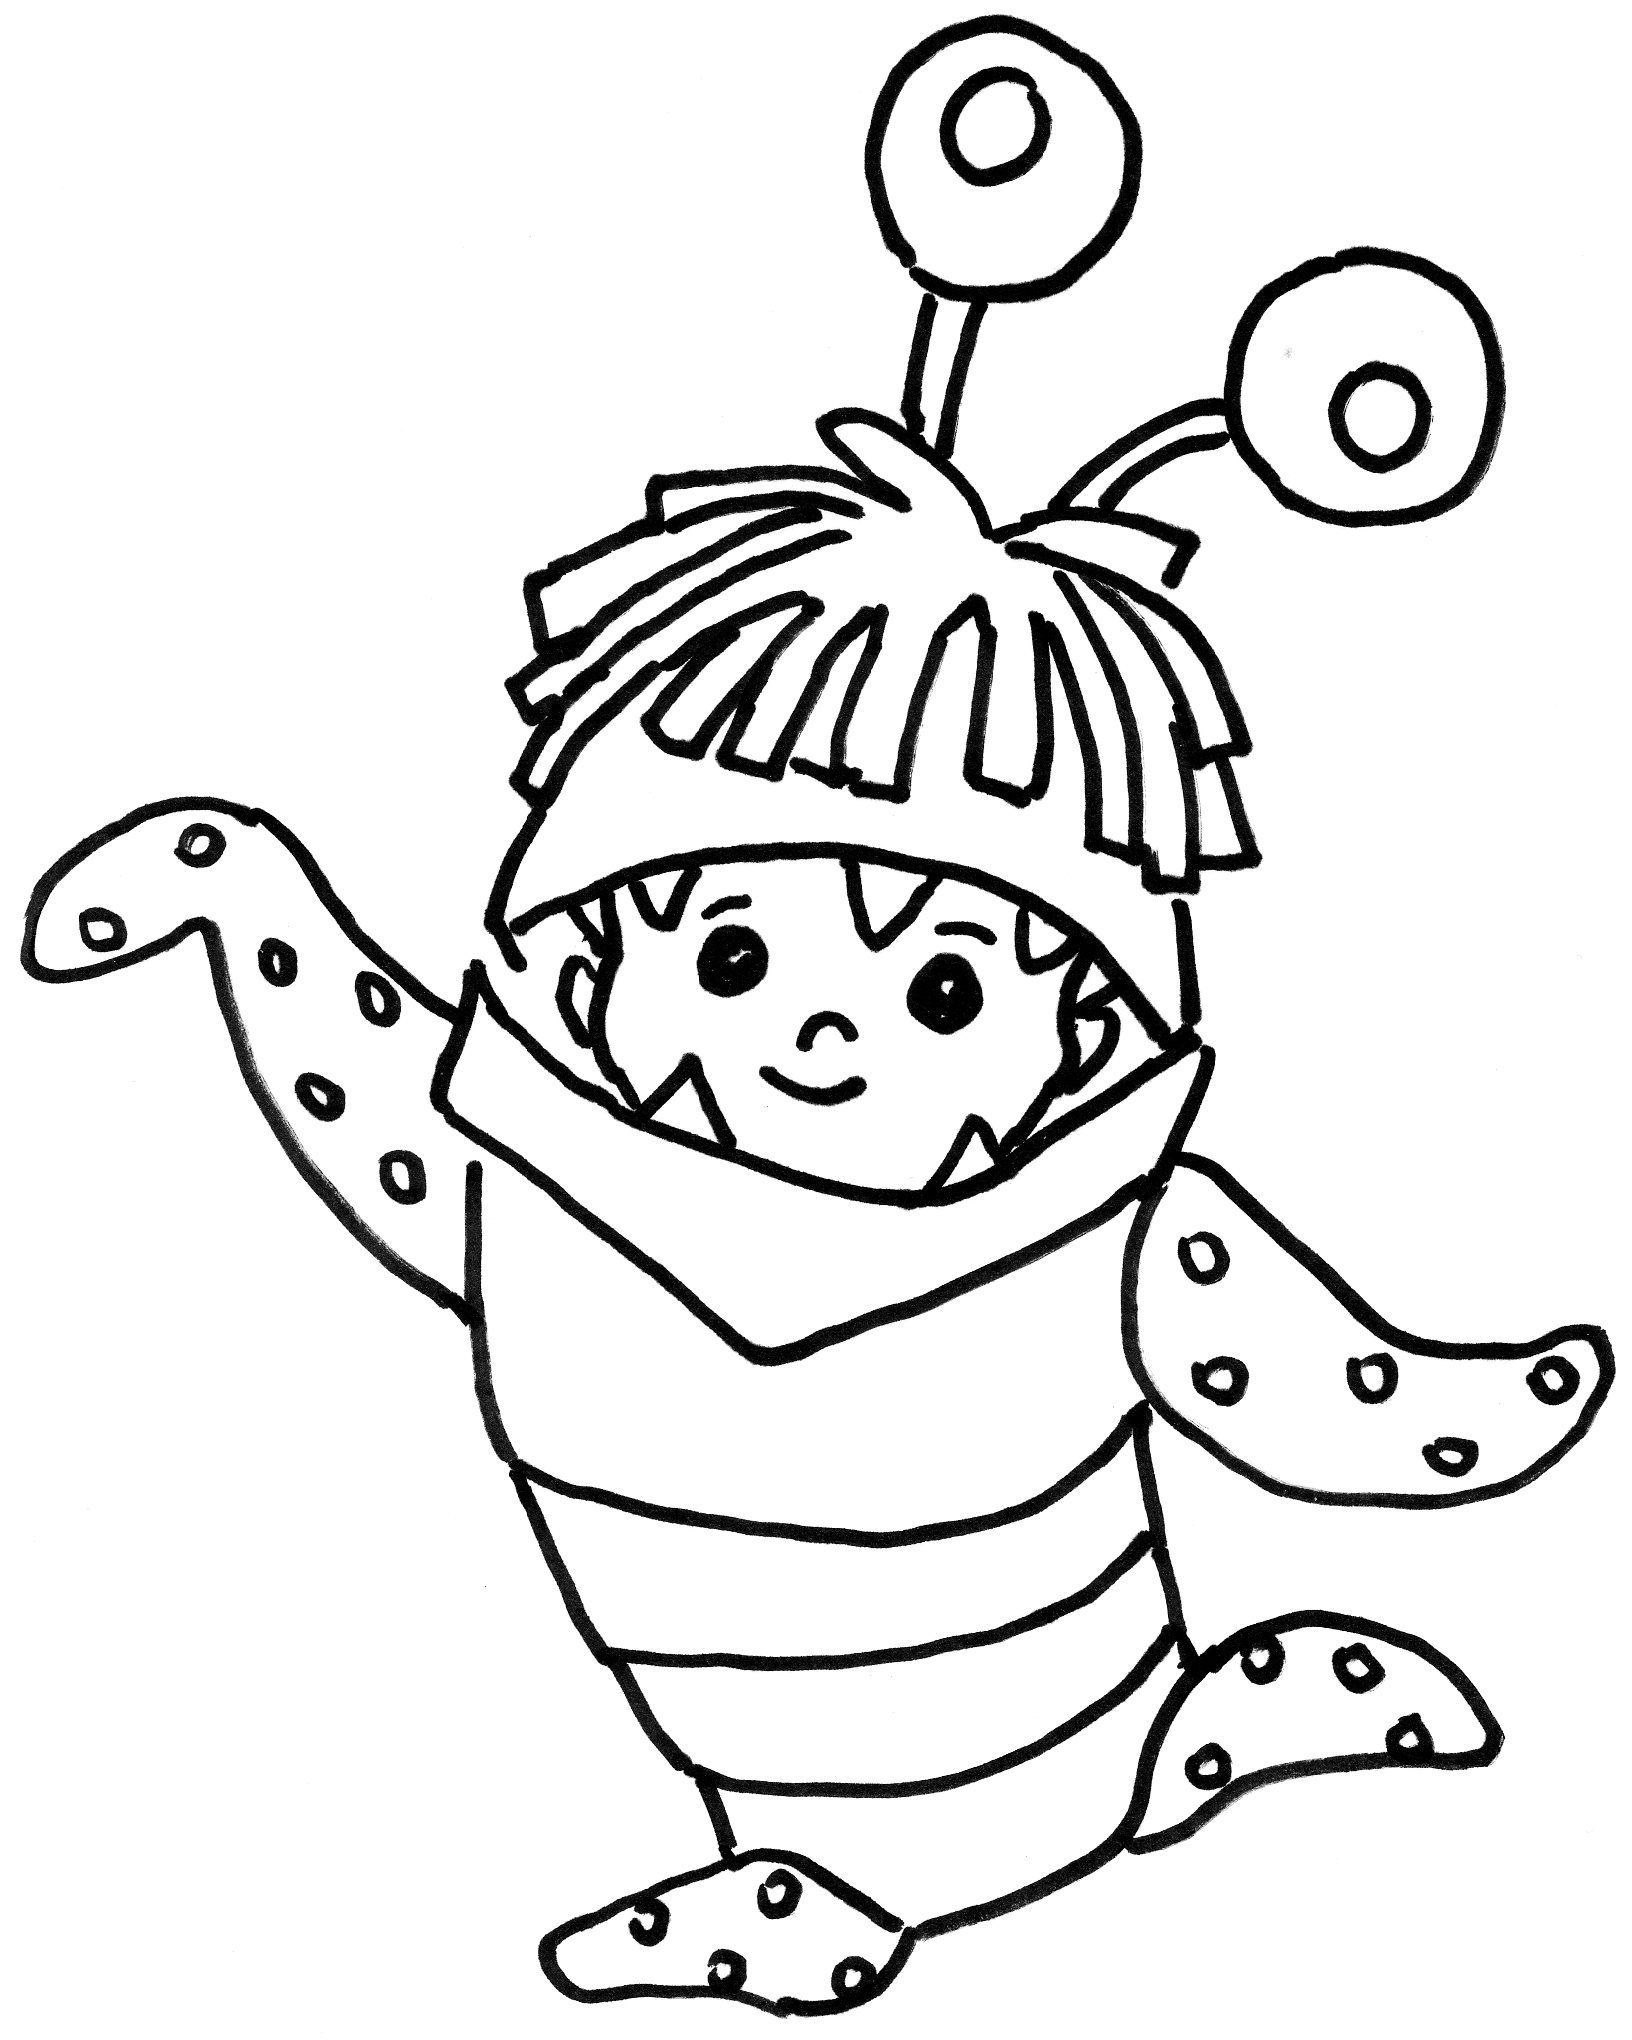 Adult Cute Monsters Inc Printable Coloring Pages Images best monsters inc boo coloring pages 09 gallery images